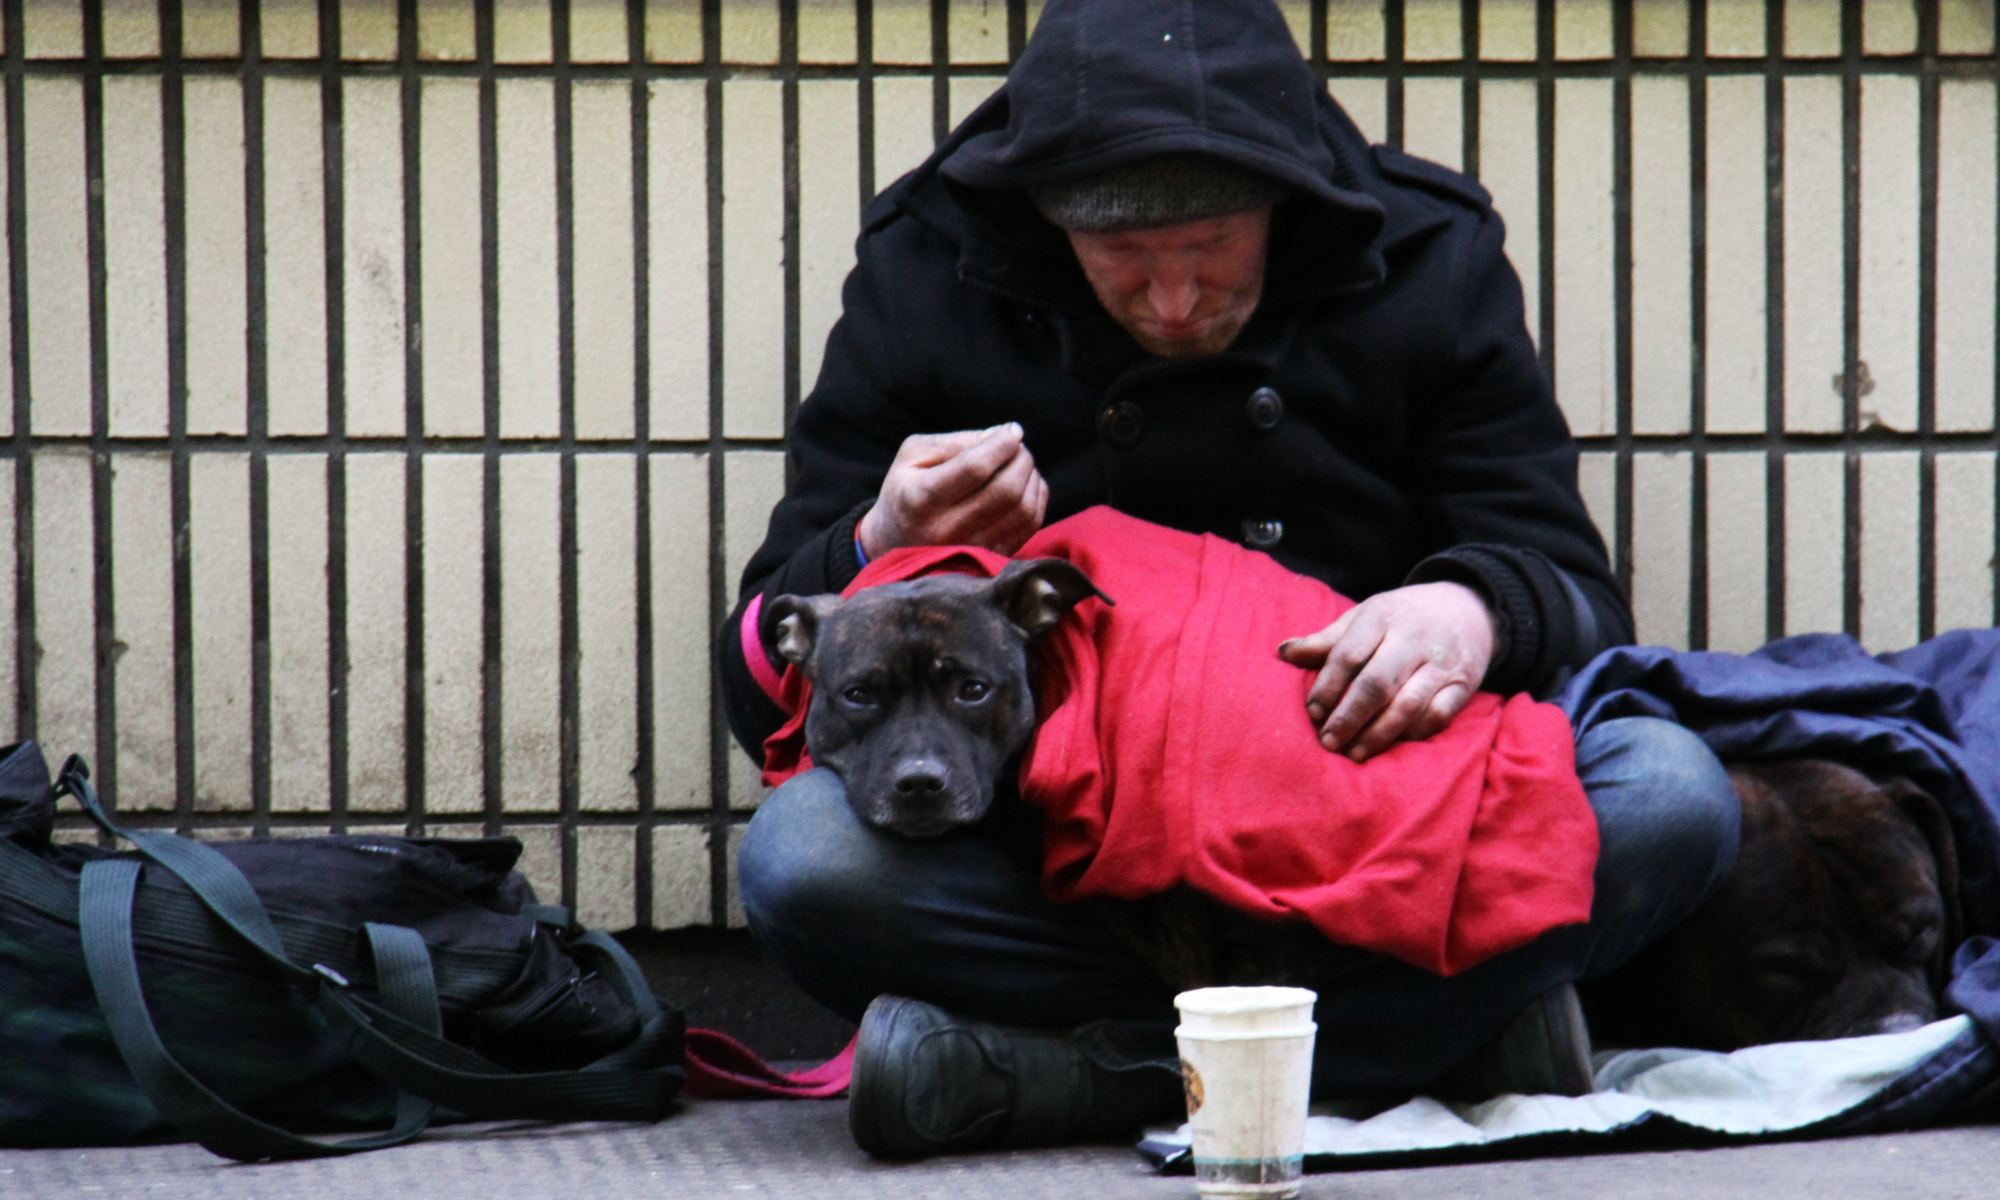 Dog sitting on homeless person's lap